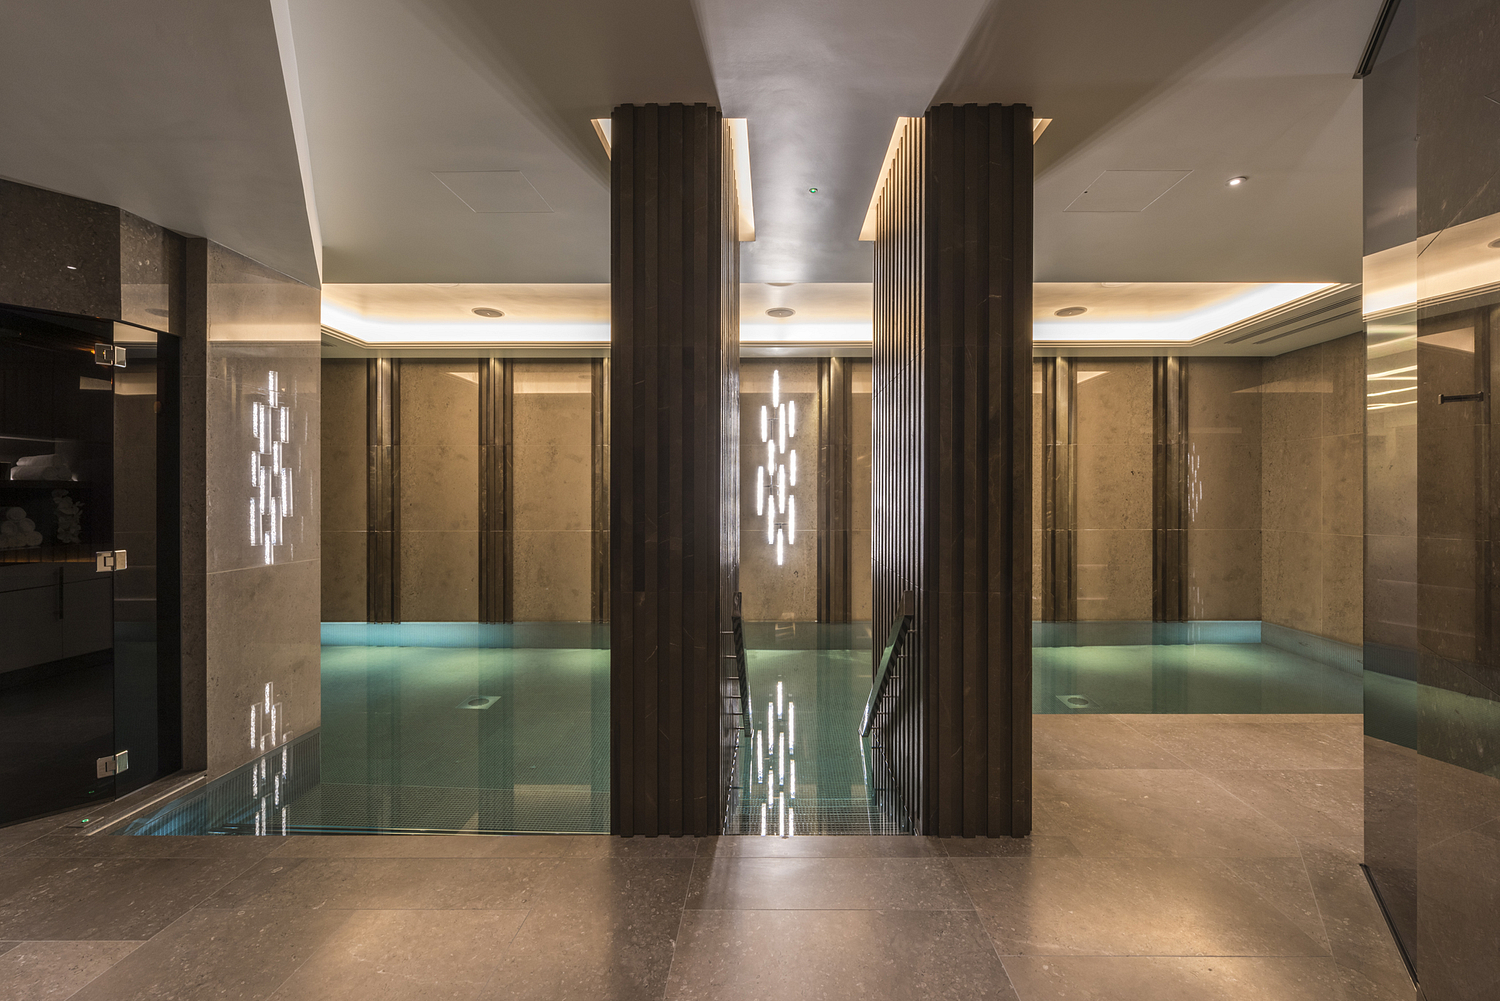 Basement swimming pool detail, London residential apartments